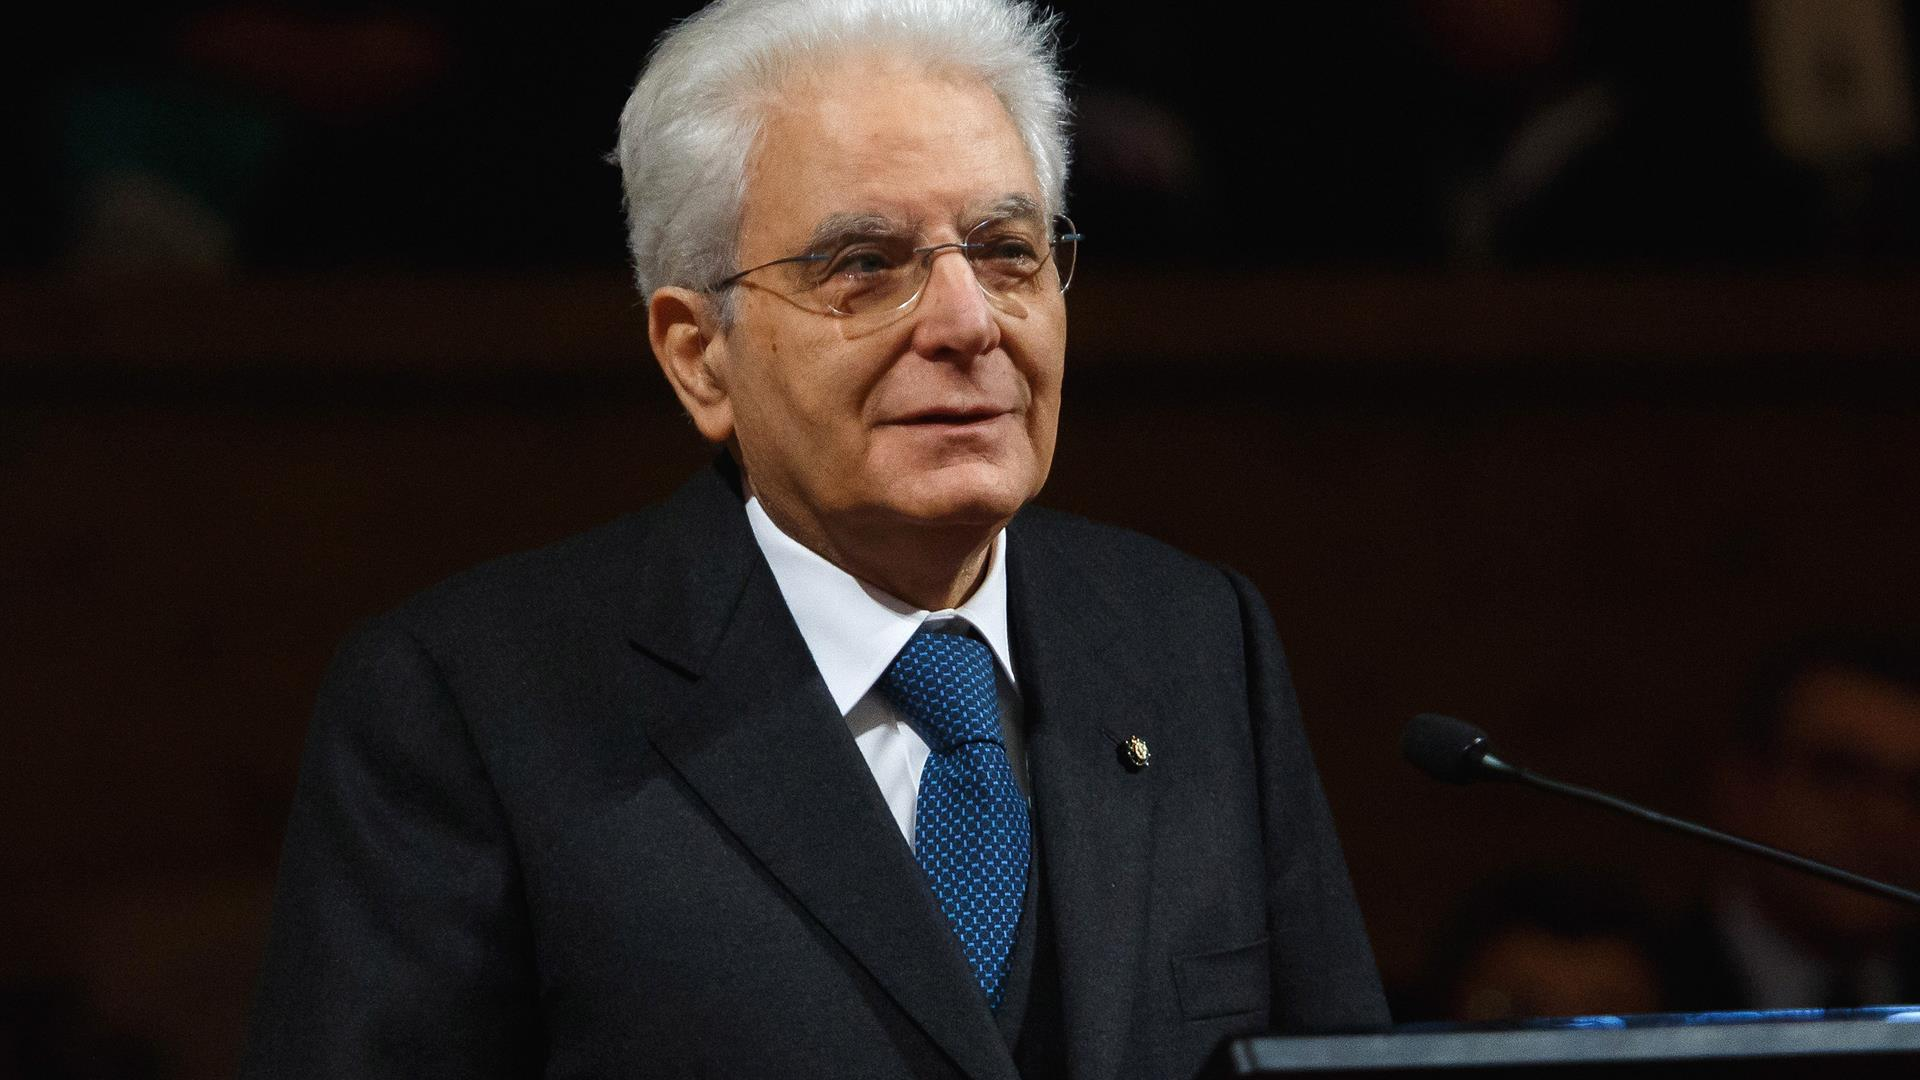 Sergio Mattarella Photo By Awakening:Getty Images)